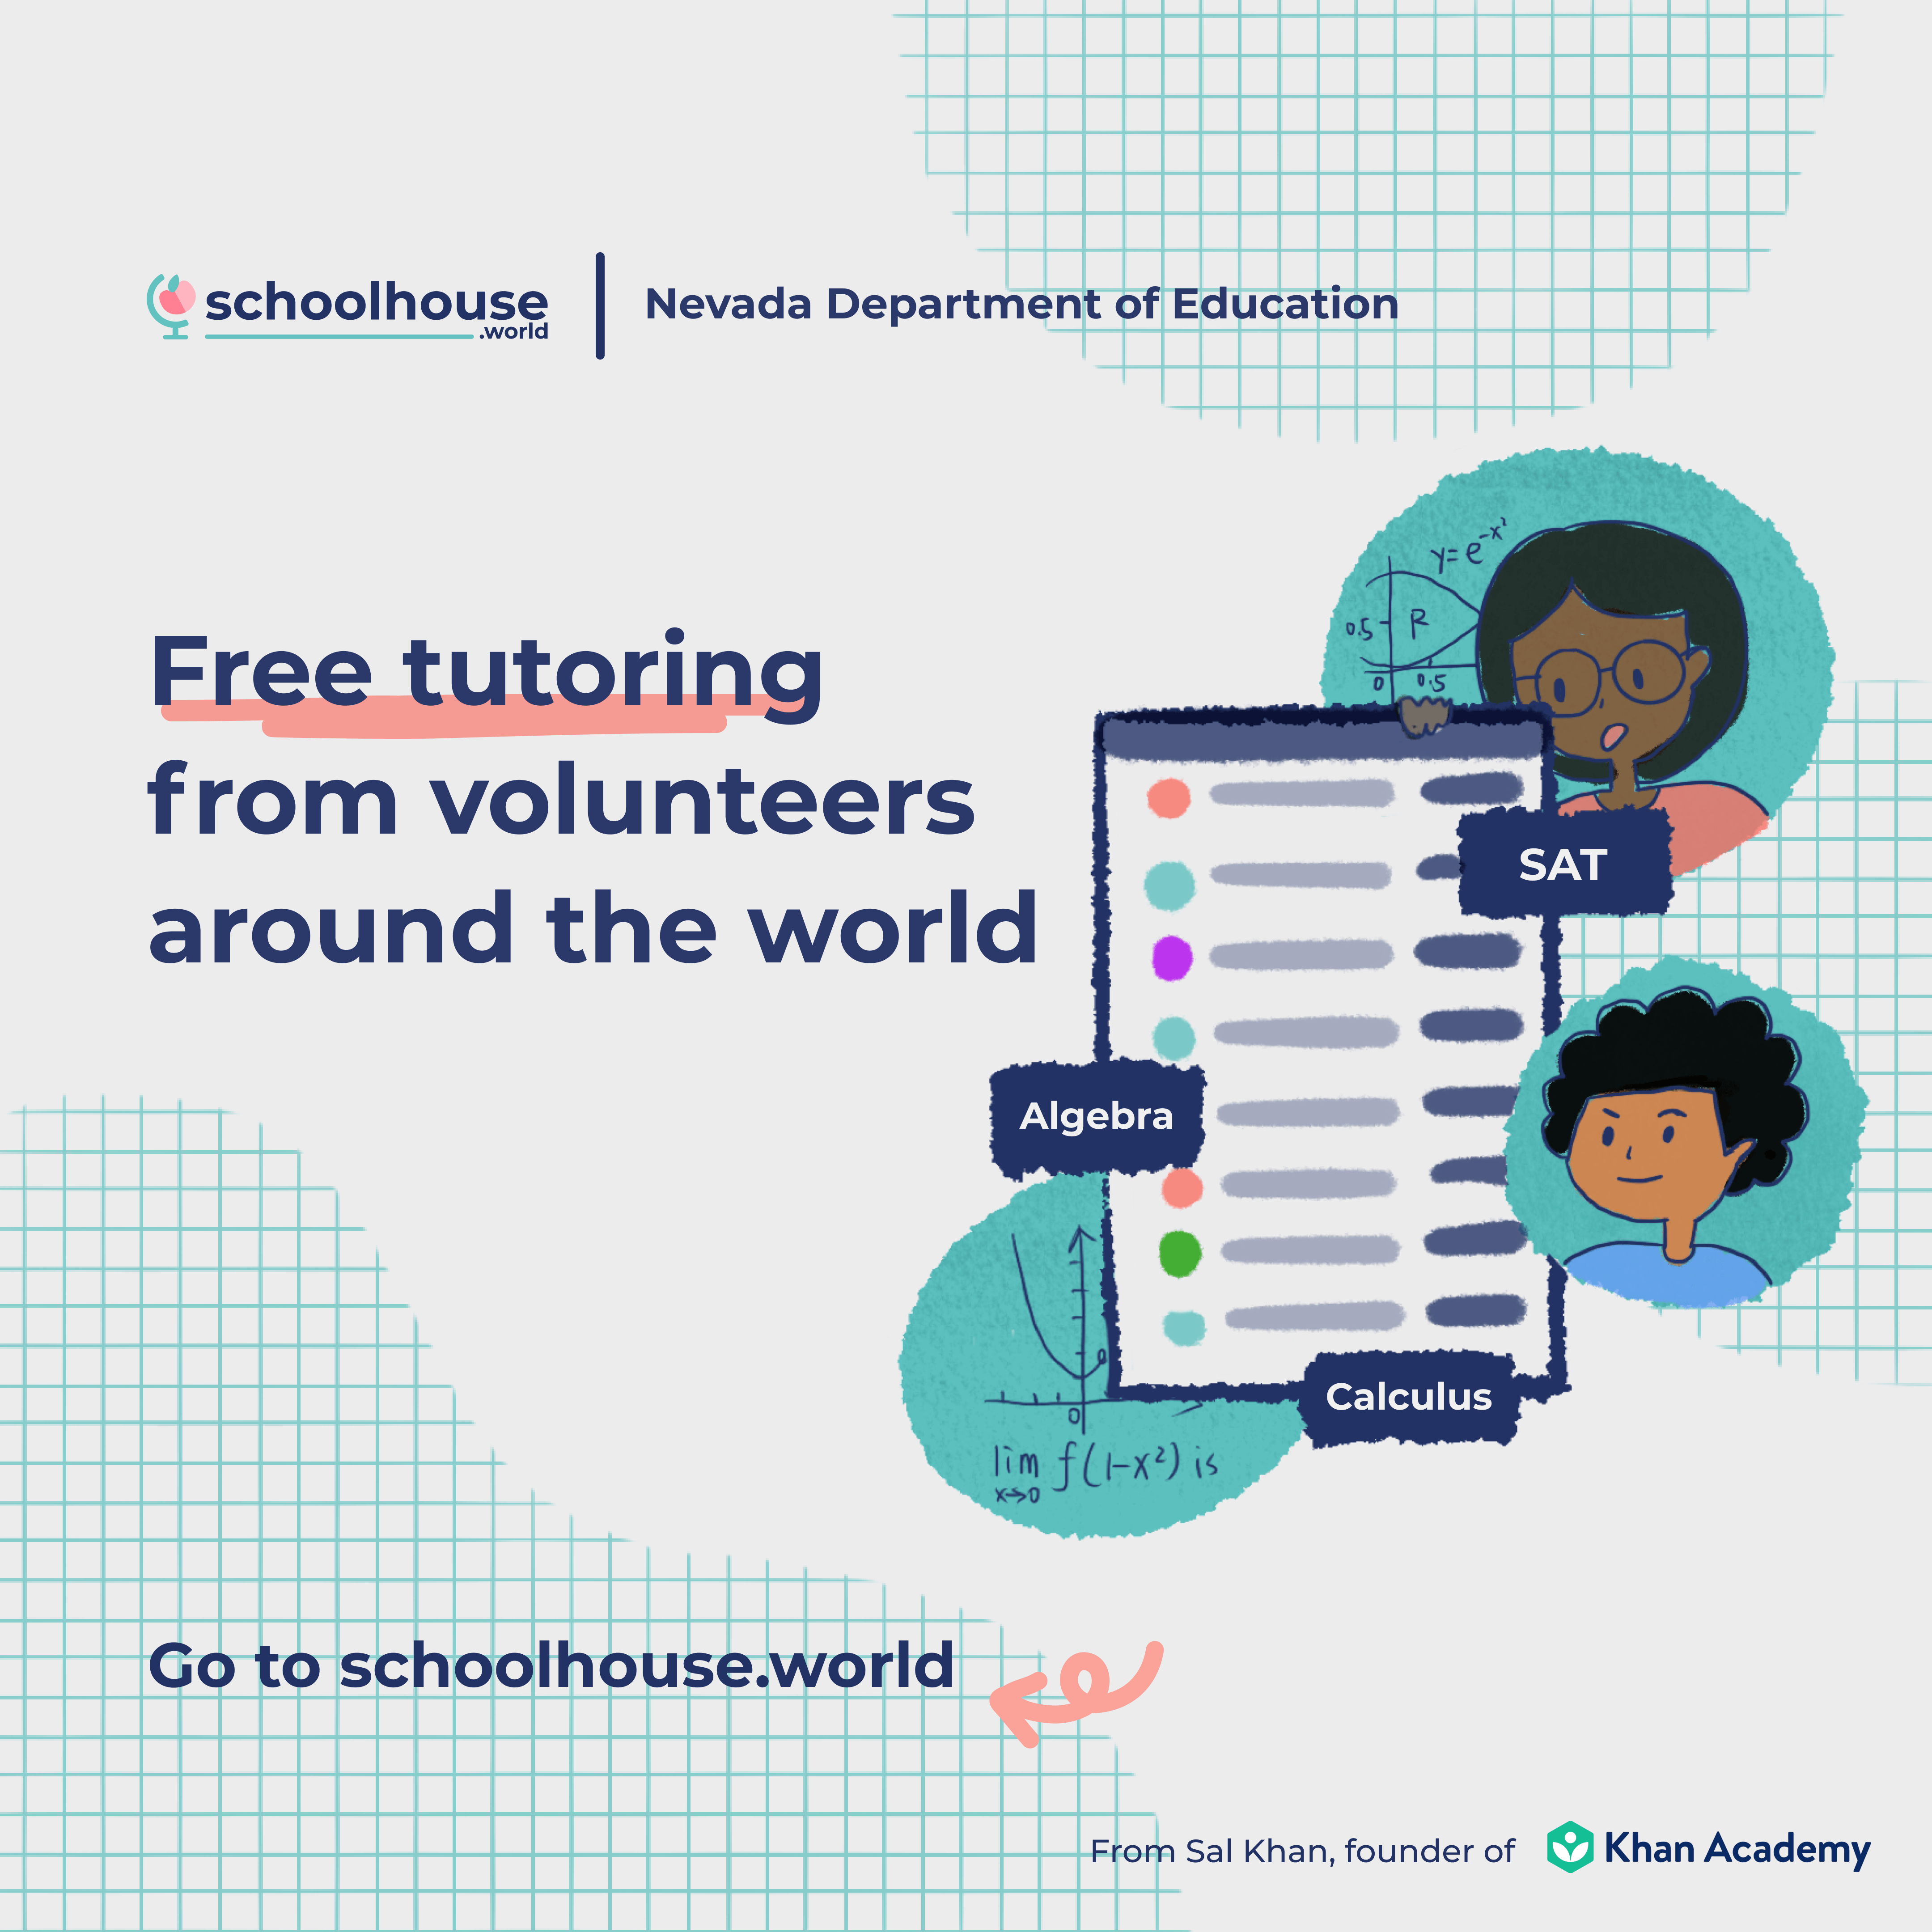 Free tutoring from volunteers around the world. Go to schoolhouse.world